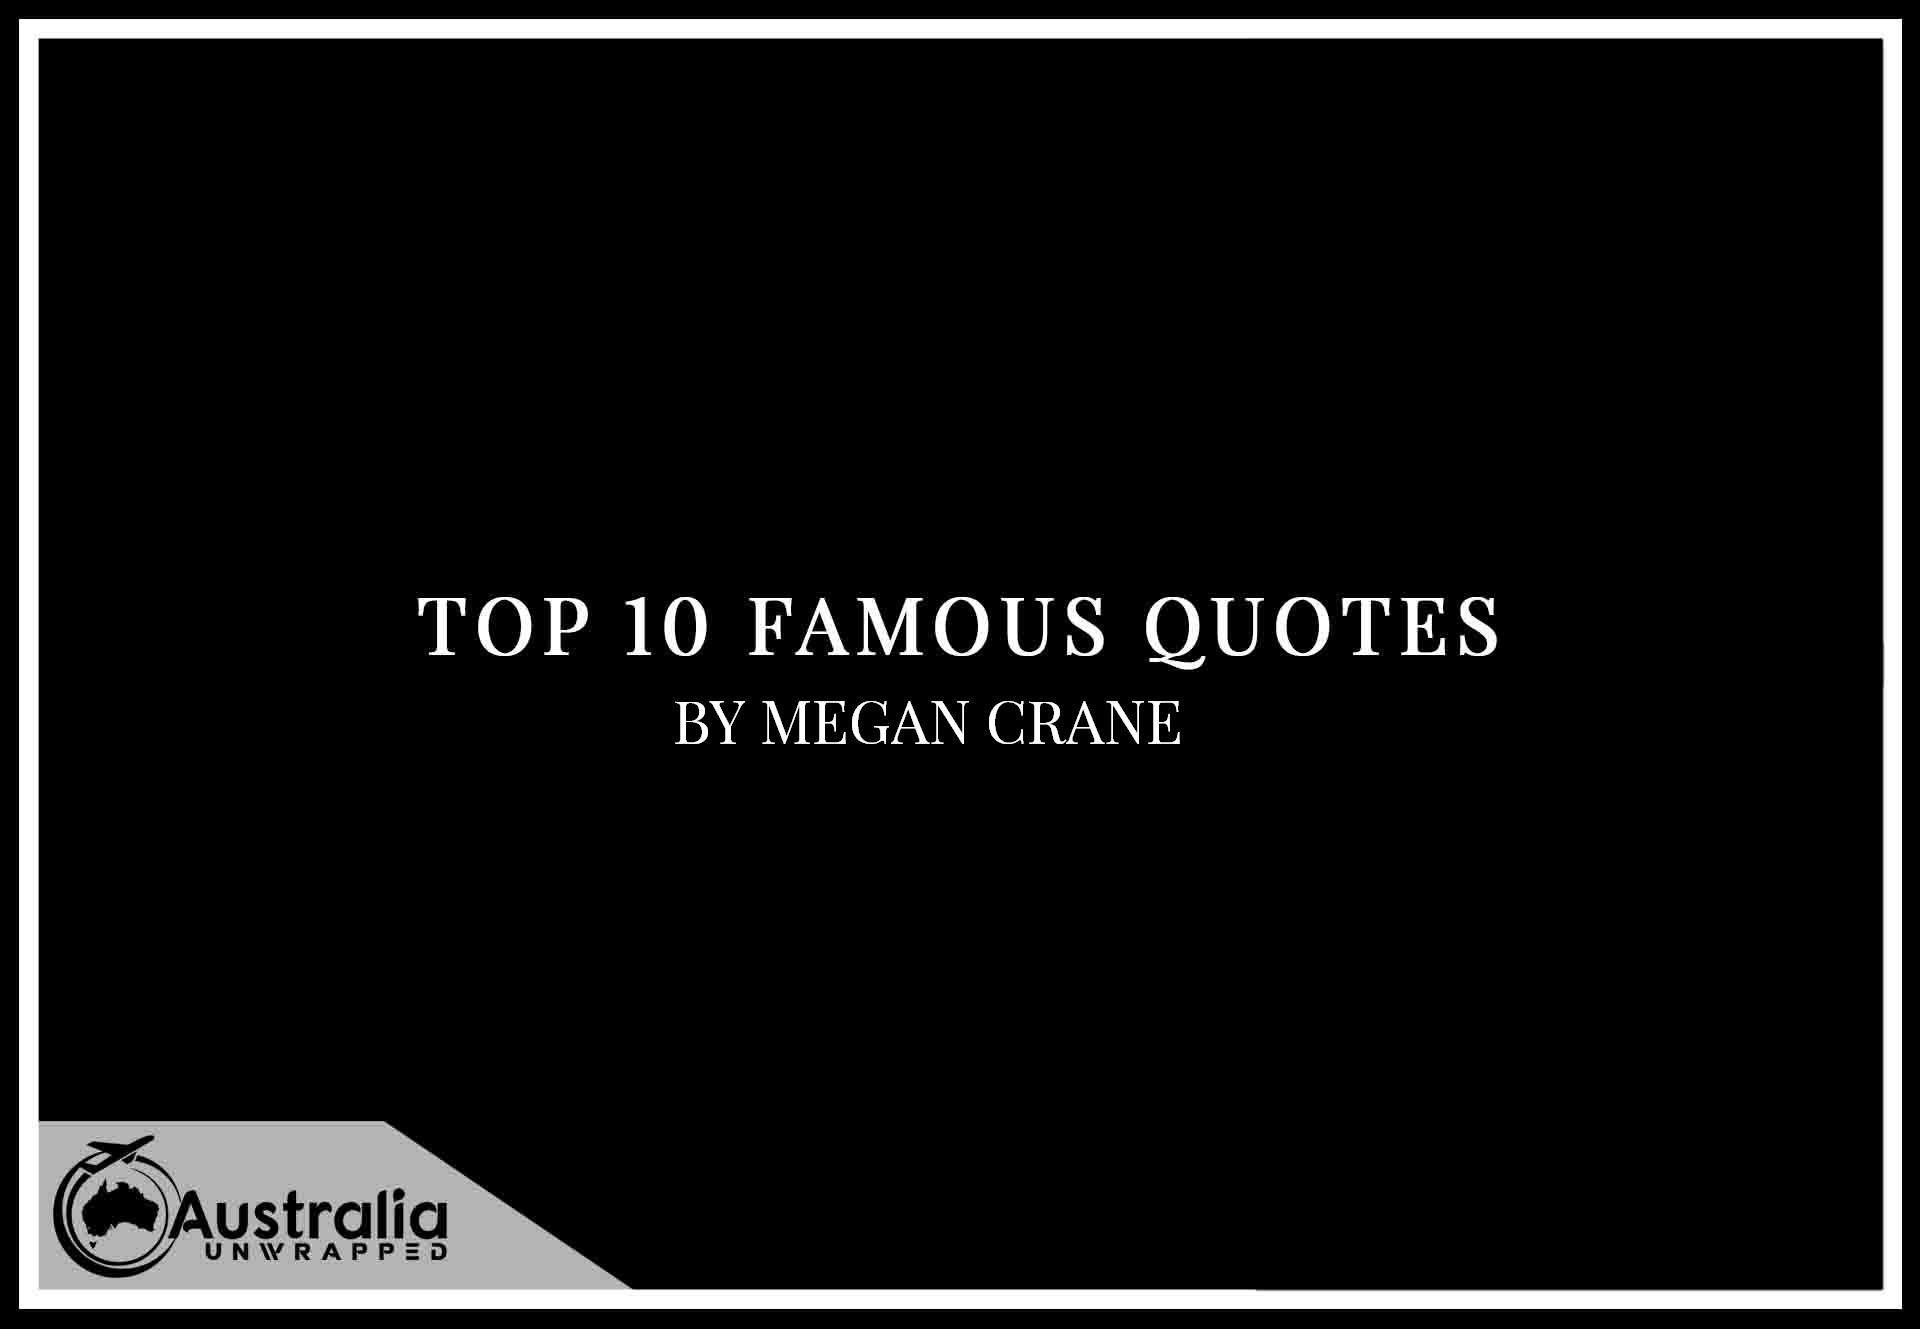 Top 10 Famous Quotes by Author Megan Crane